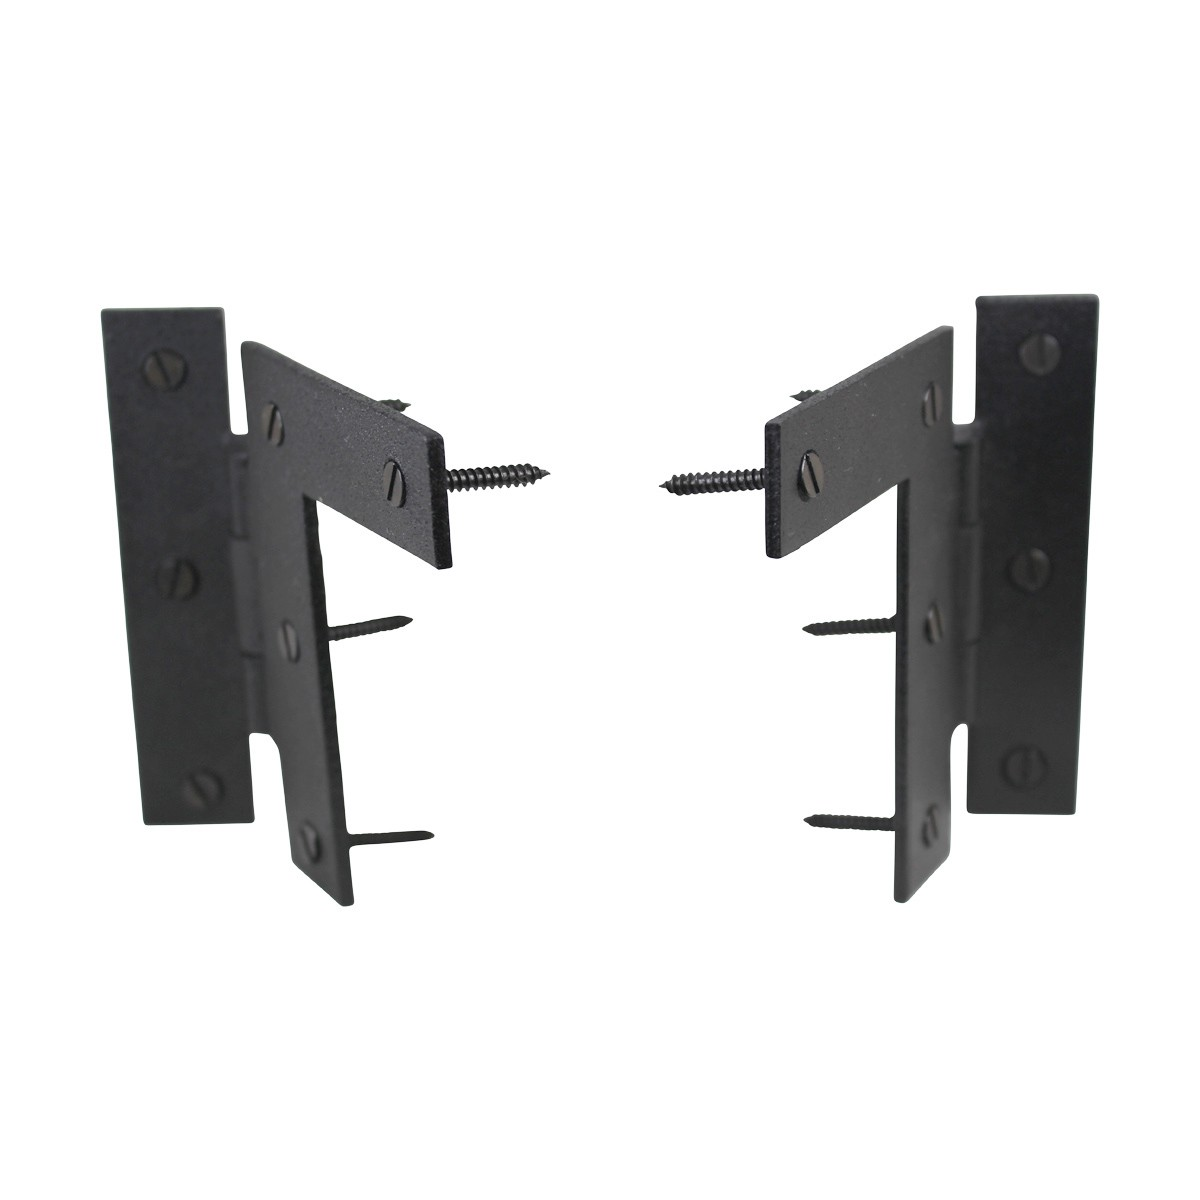 "Pair Left and Right H-L Wrought Iron Cabinet Hinge 3.5"" H ..."